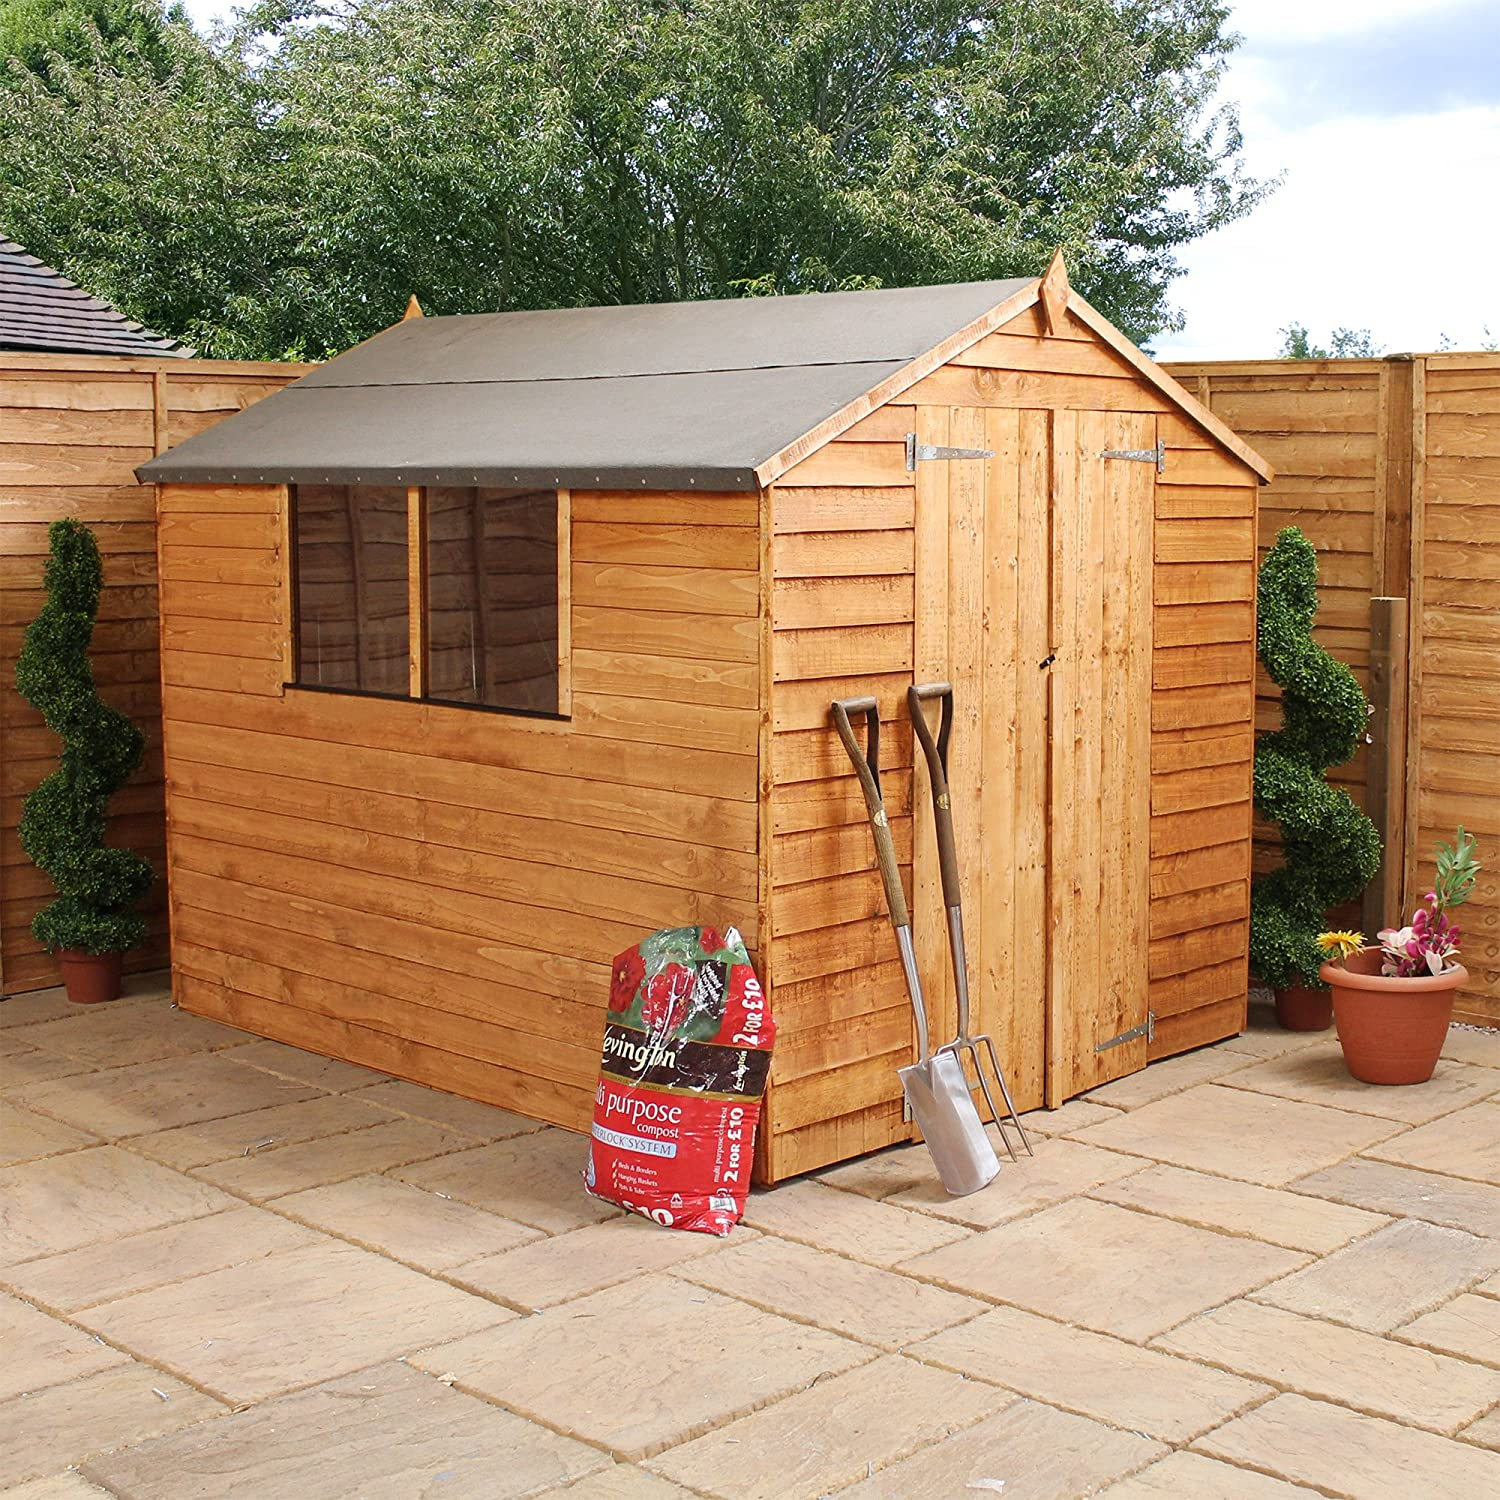 sheds garden delivery free wooden online master optimized lifestyle cedarshed purchase